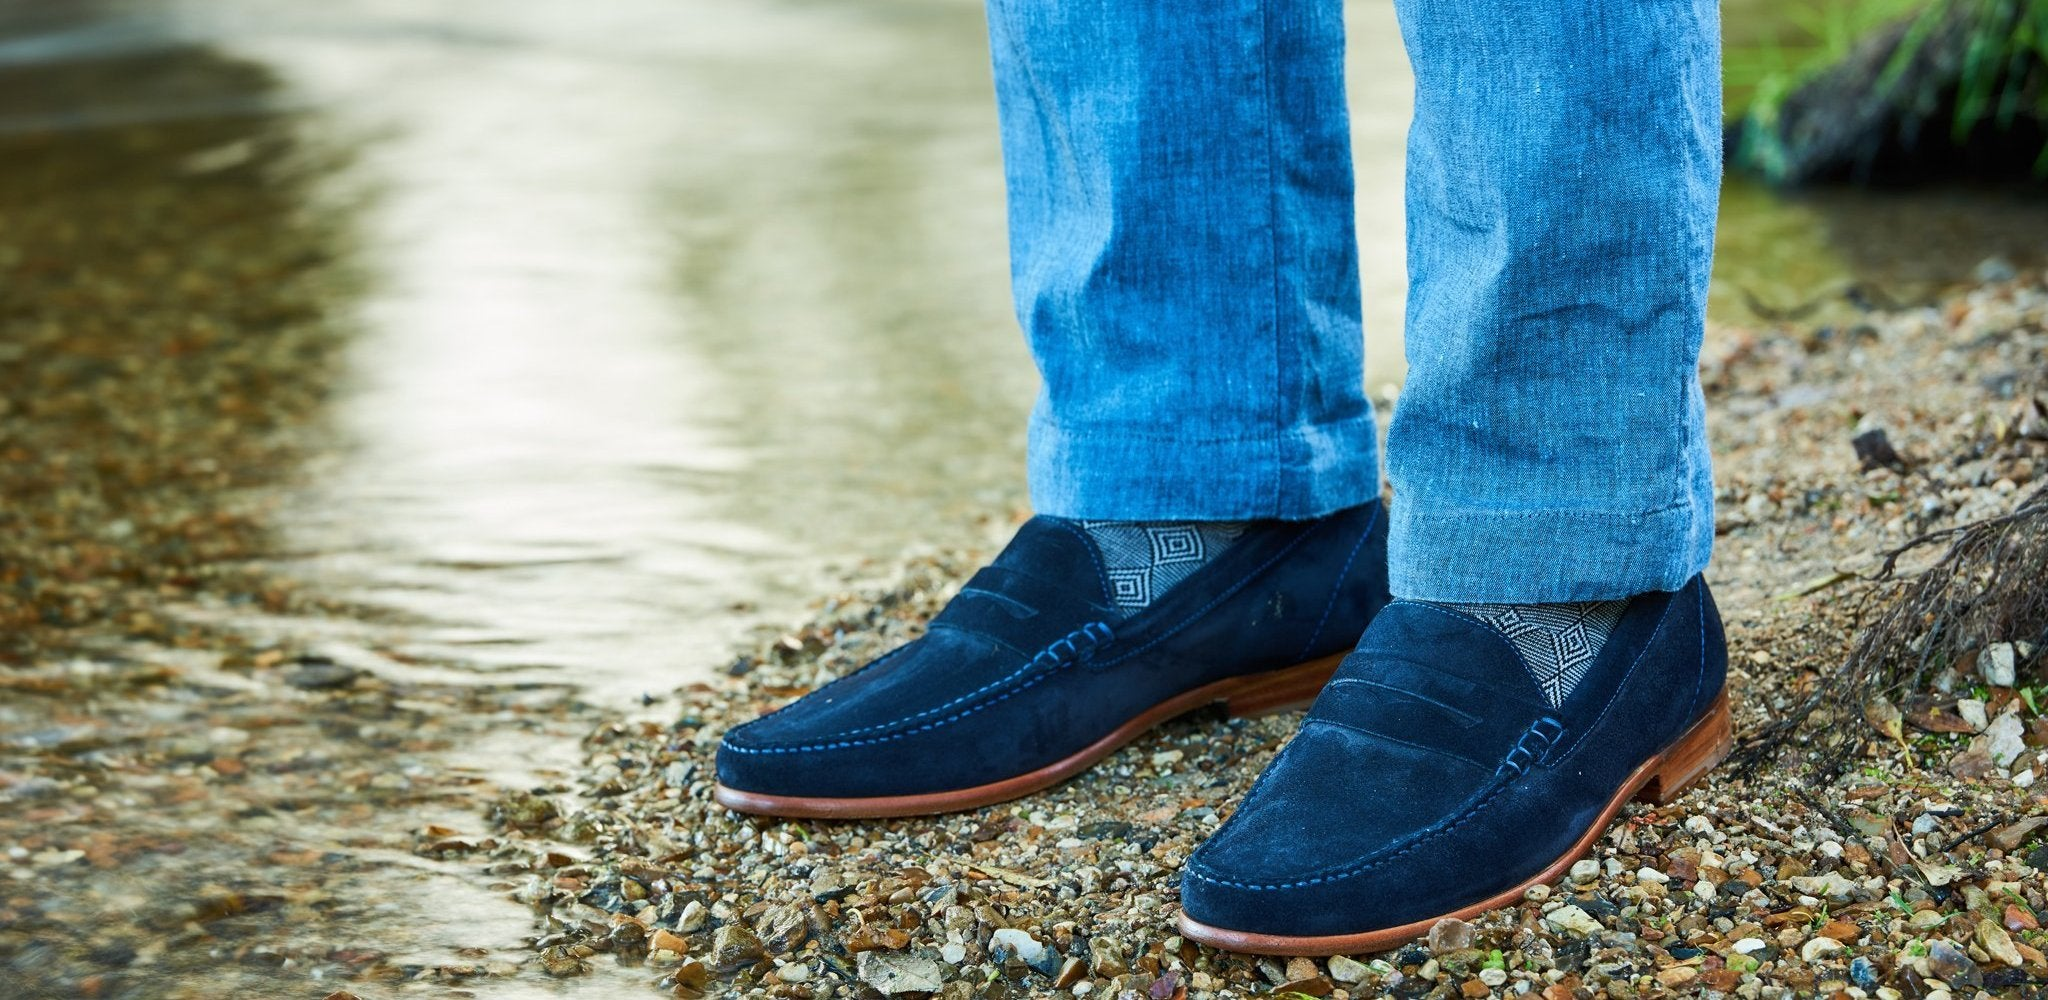 William Loafer shoes by Barker